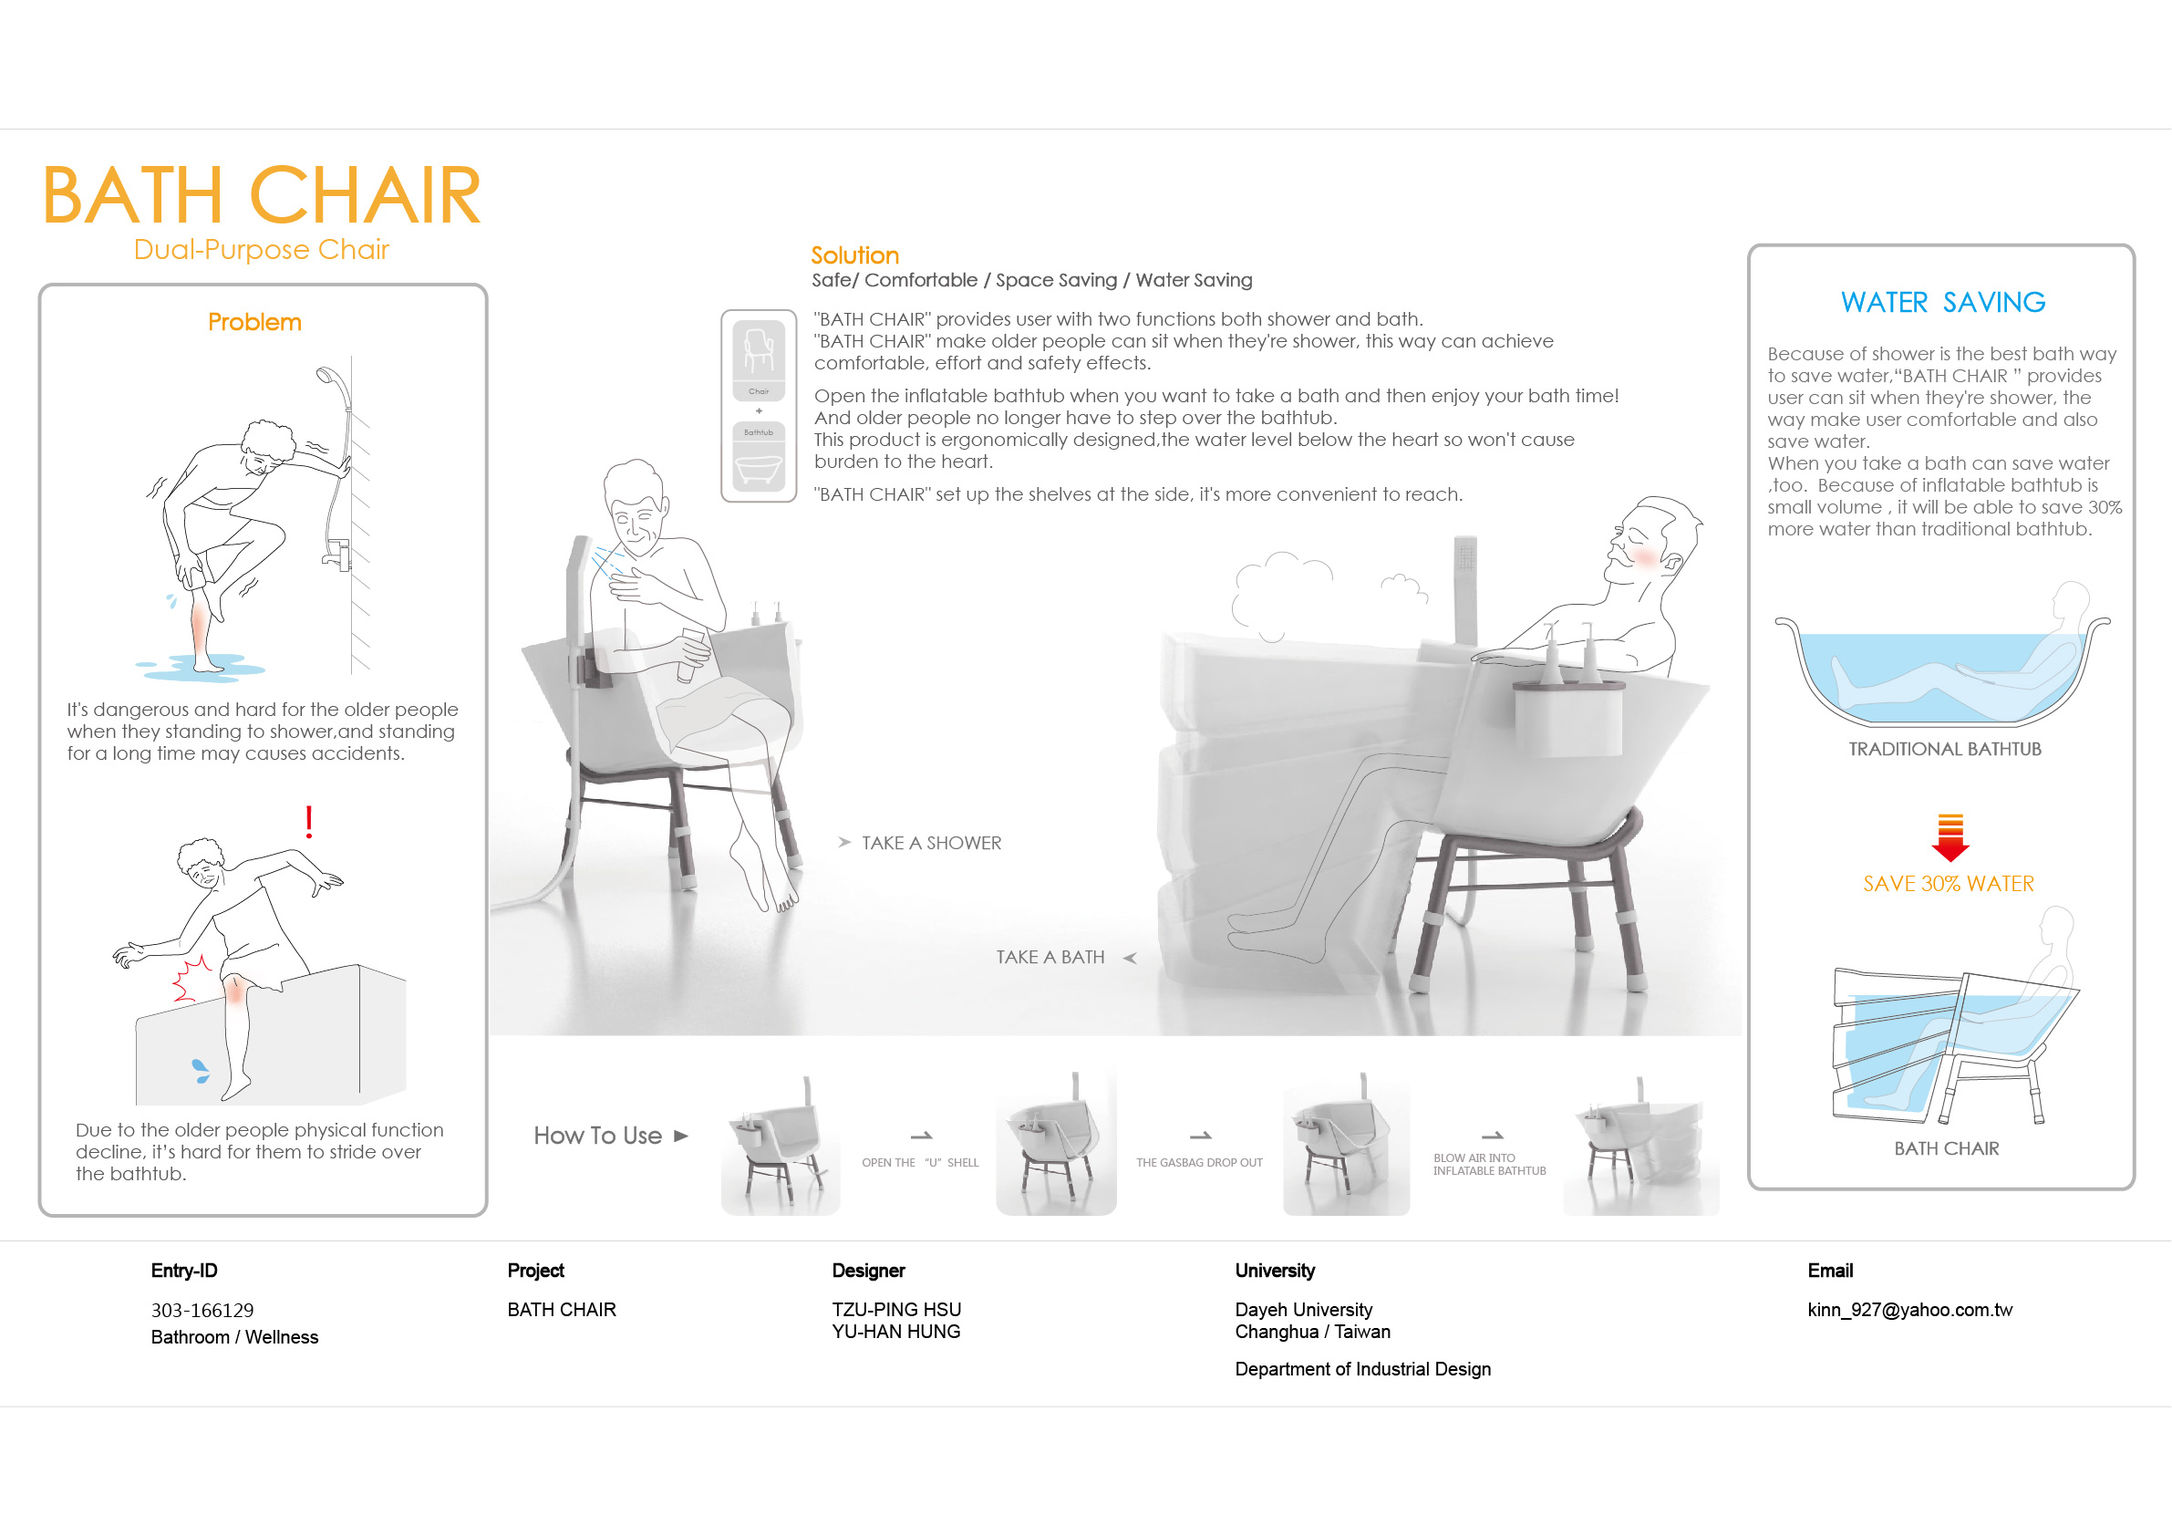 BATH CHAIR - Entry - iF WORLD DESIGN GUIDE